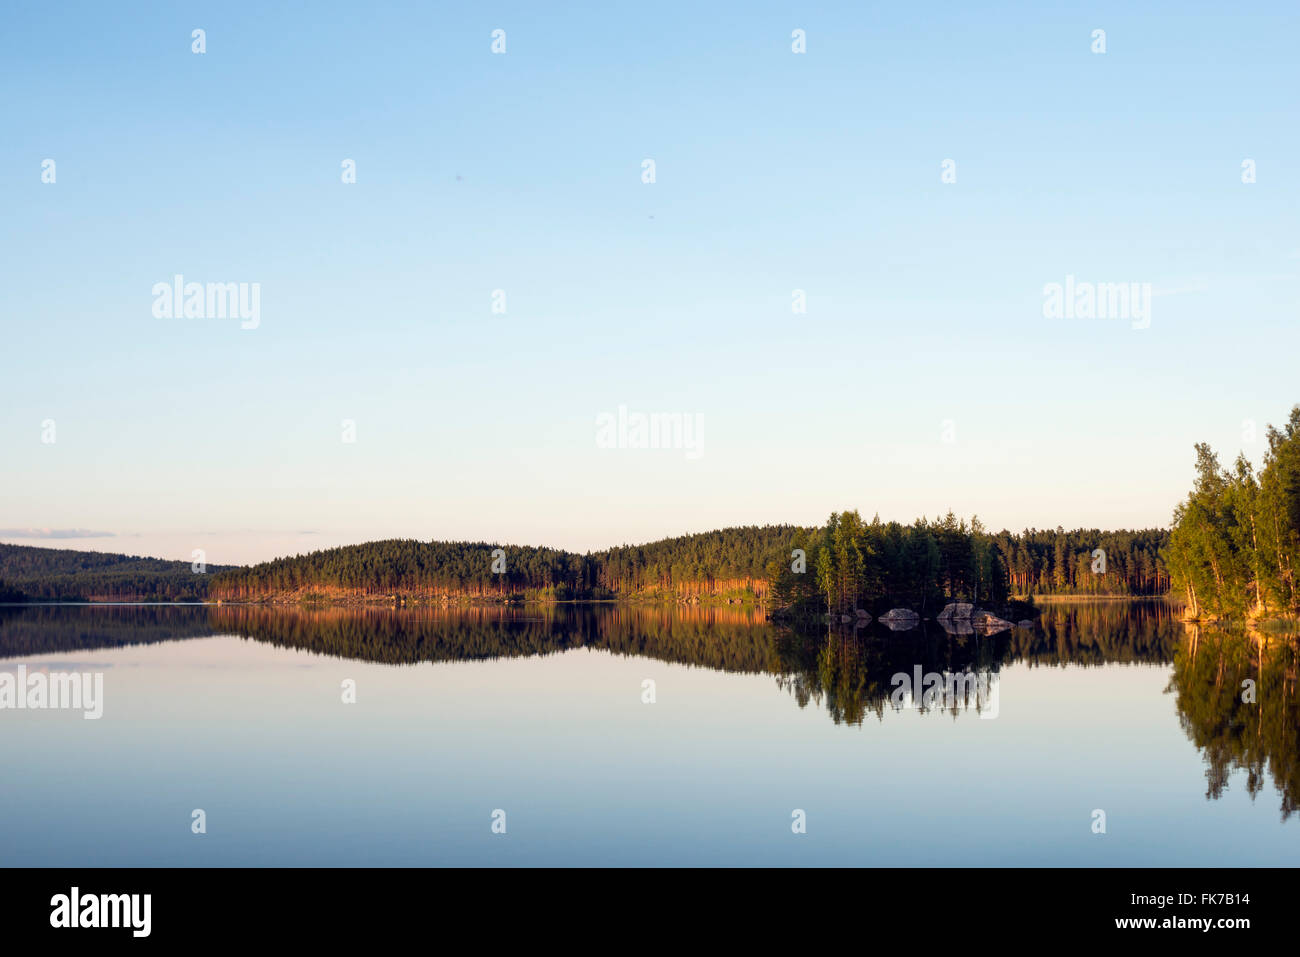 Clam lake, Sweden - Stock Image